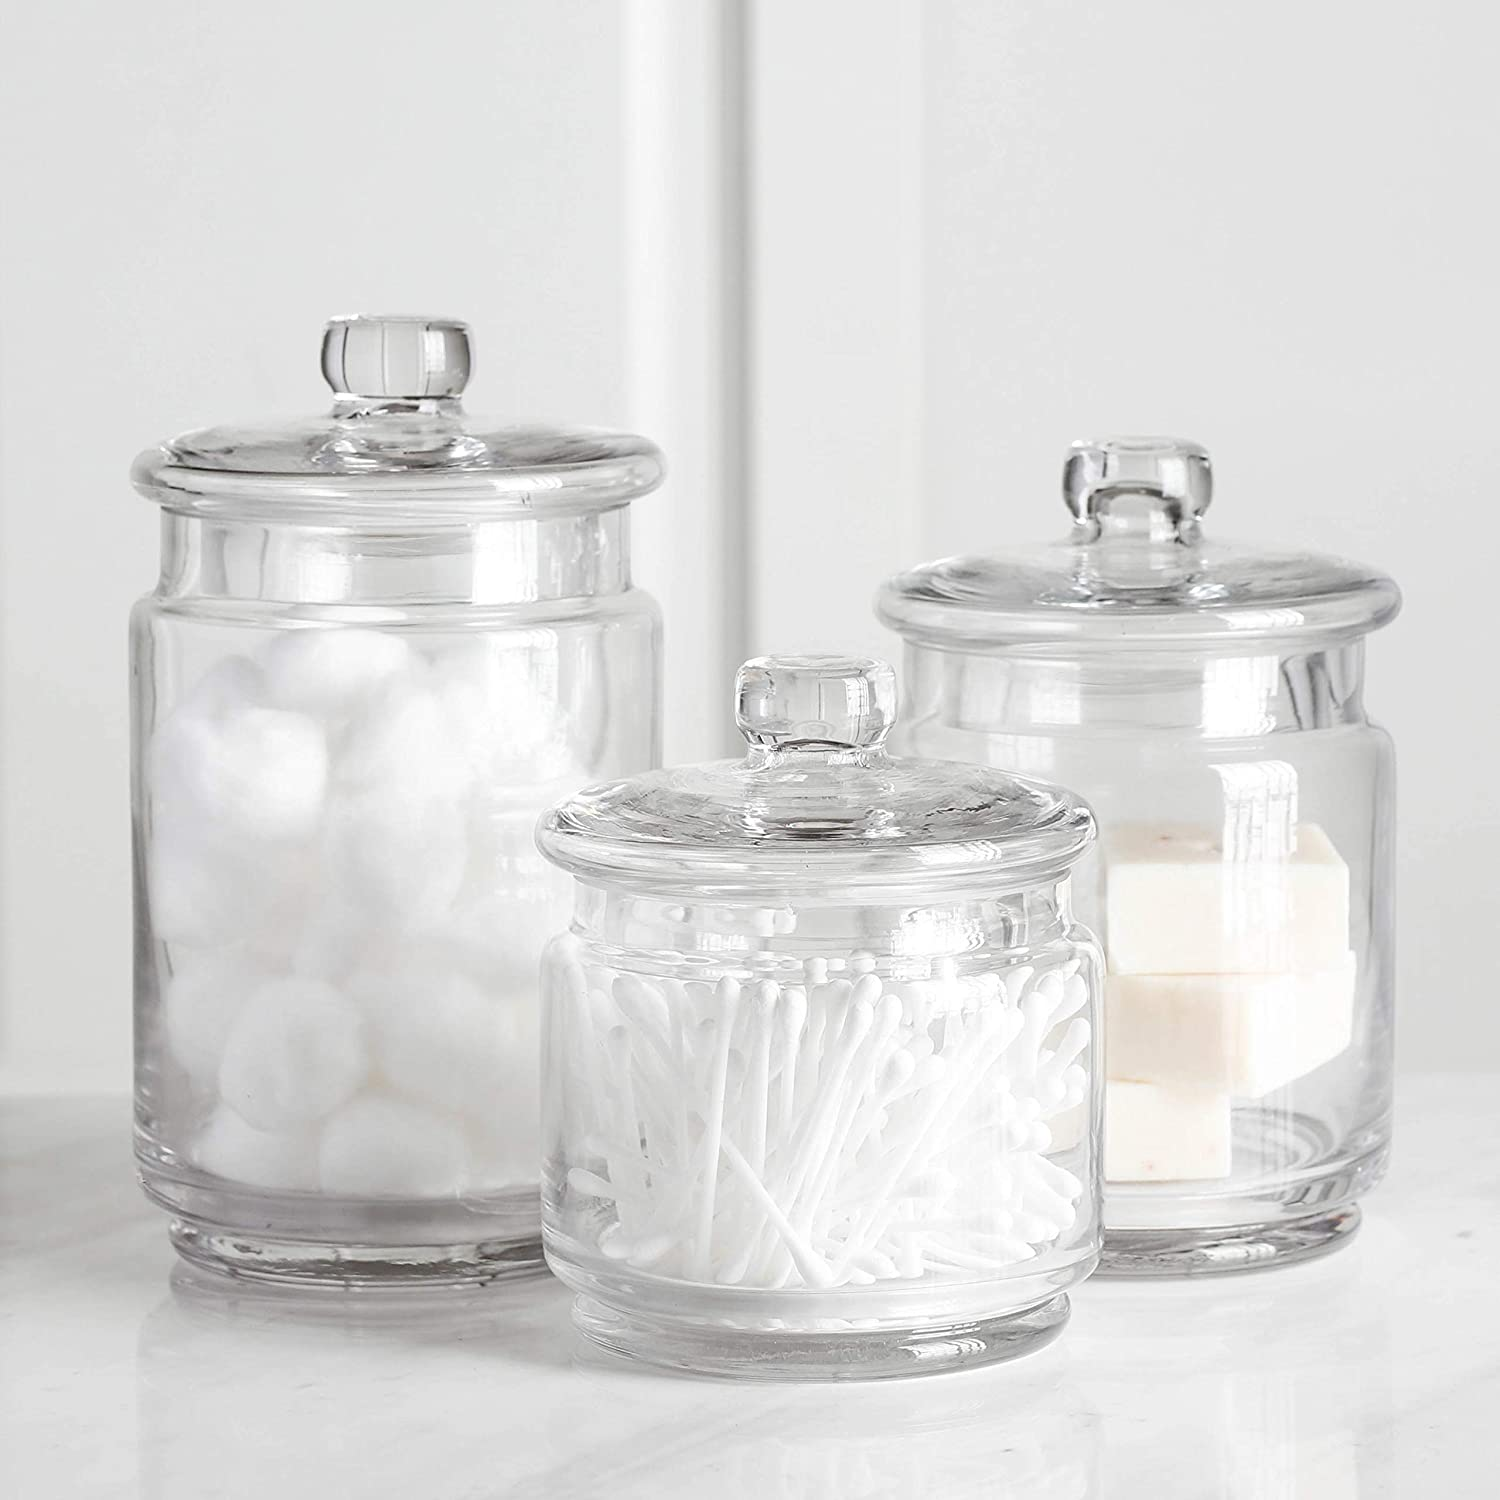 Amazon Com Whole Housewares Clear Glass Apothecary Jars Cotton Jar Bathroom Storage Organizer Canisters Set Of 3 Home Kitchen